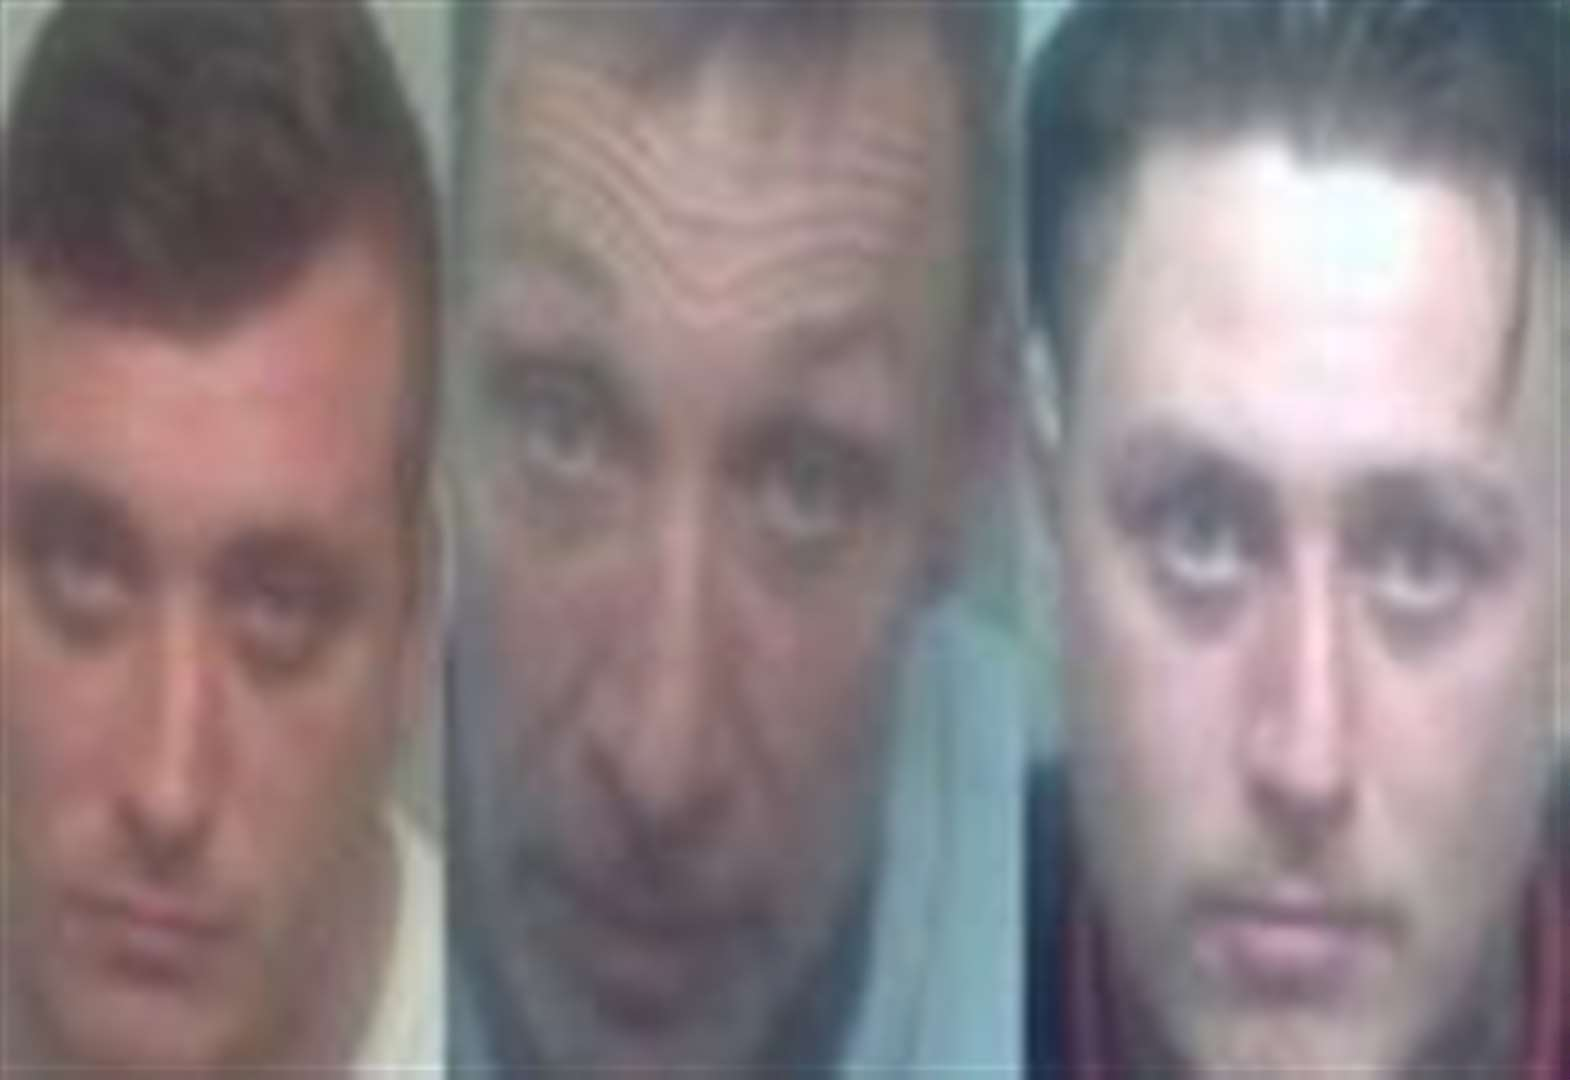 Knife attack thugs jailed for 38 years